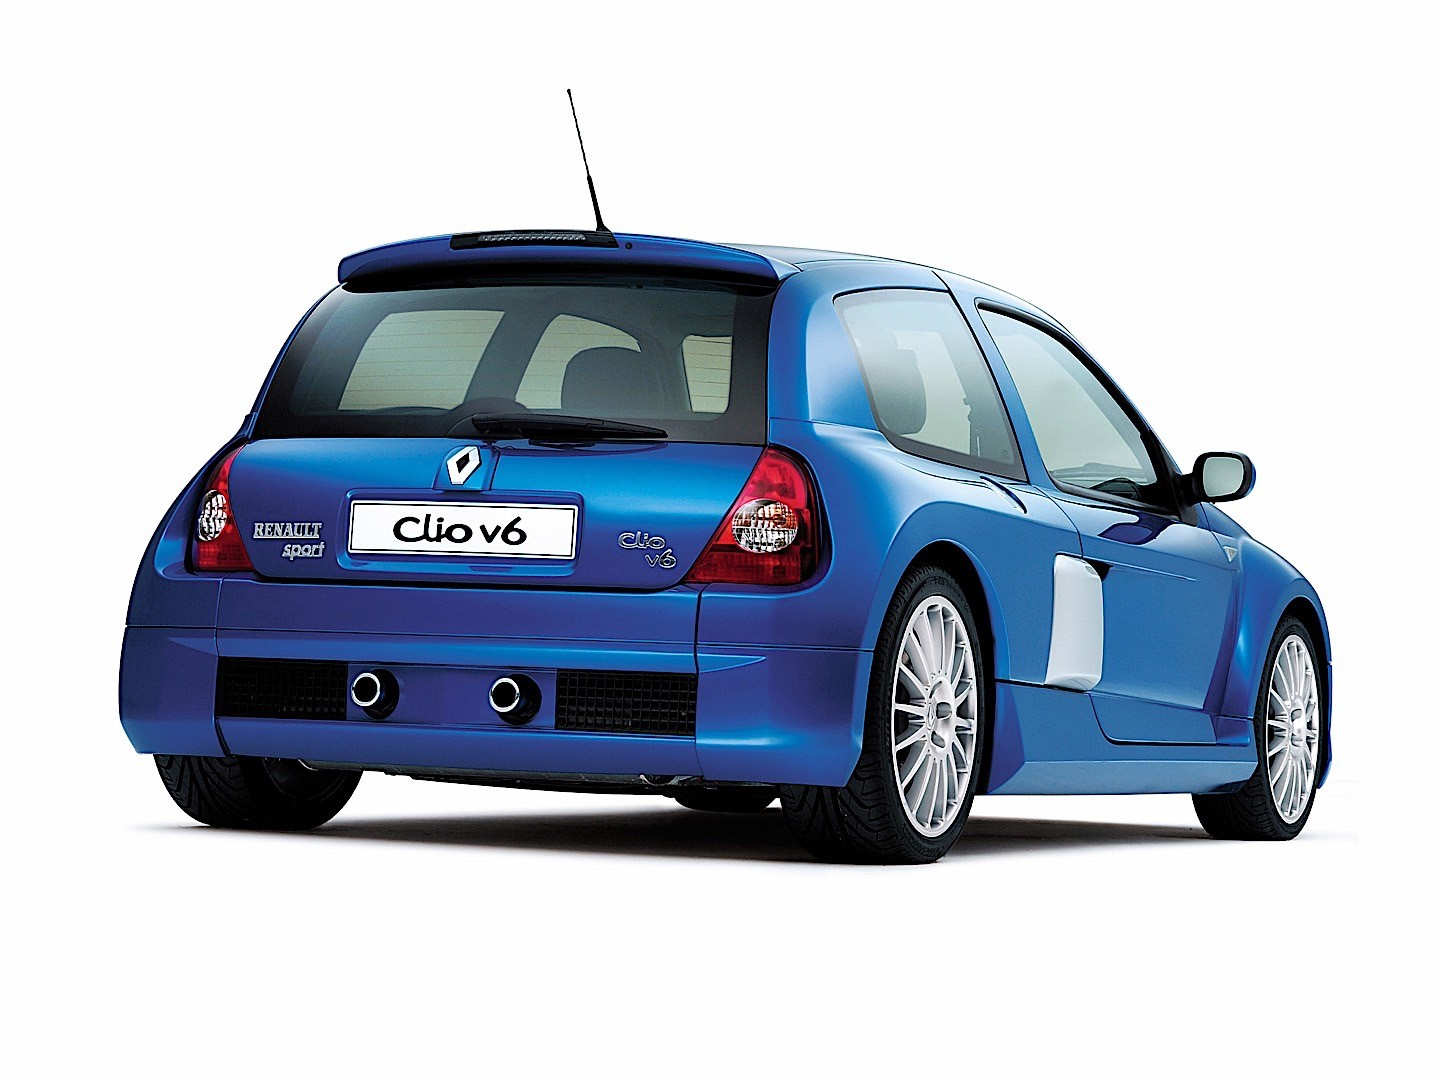 Renault Clio V6 2001 - 2005 Hatchback 3 door #4